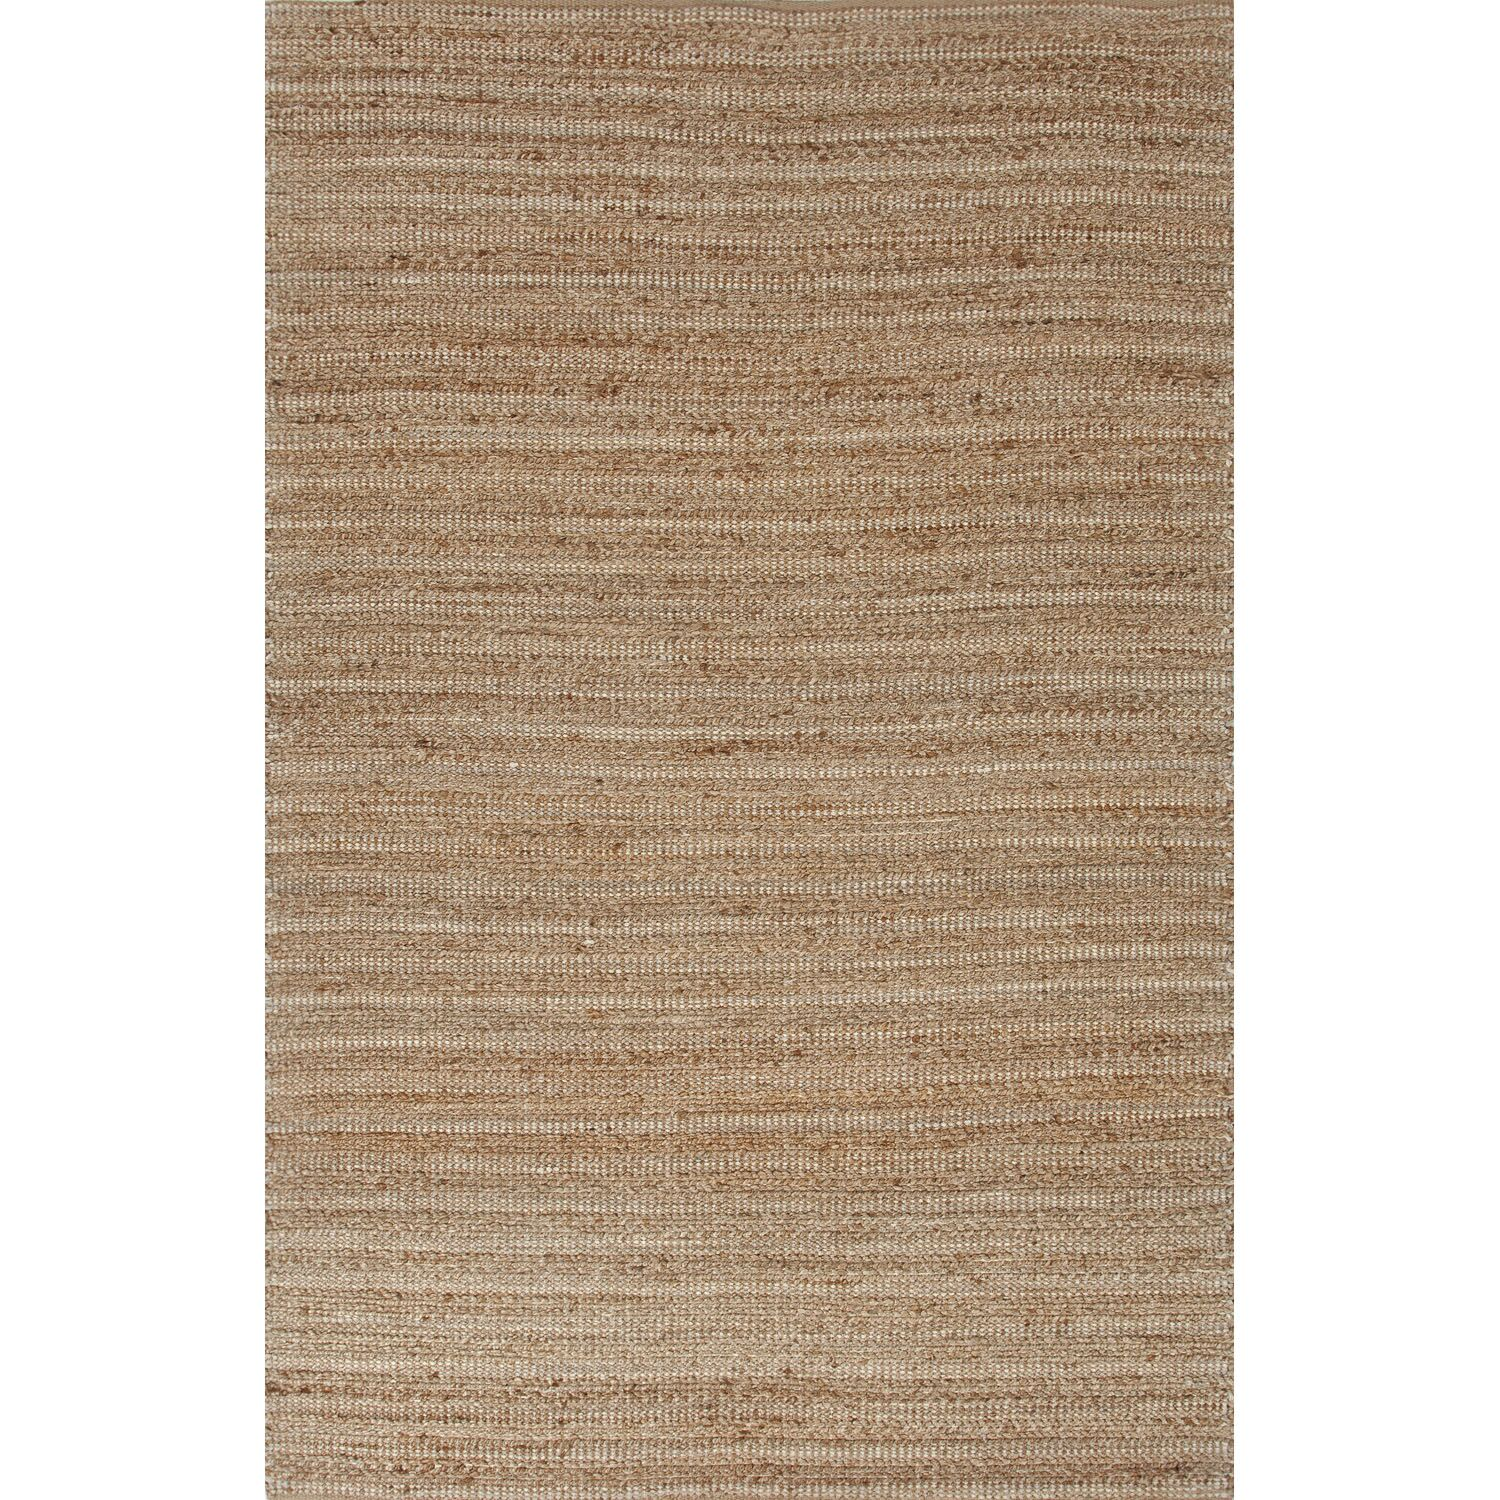 Elmwood Hand-Woven Taupe/Ivory Area Rug Rug Size: Rectangle 9' x 12'